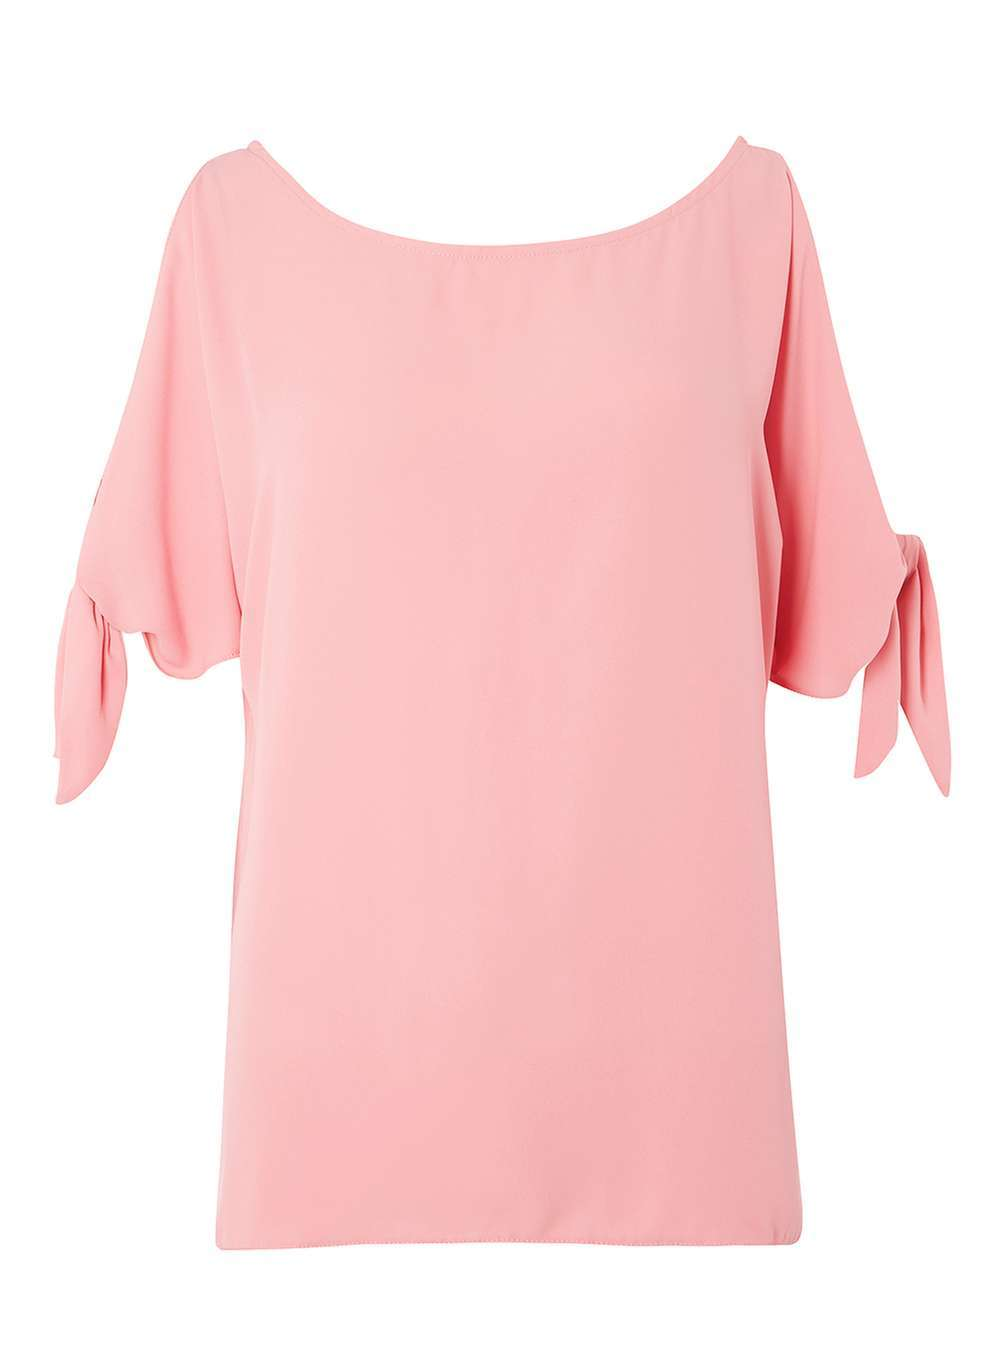 Womens Pink Tie Sleeve Blouse Pink - neckline: round neck; pattern: plain; style: blouse; predominant colour: blush; occasions: casual; length: standard; fibres: polyester/polyamide - 100%; fit: body skimming; sleeve length: short sleeve; sleeve style: standard; pattern type: fabric; texture group: other - light to midweight; wardrobe: basic; season: a/w 2016